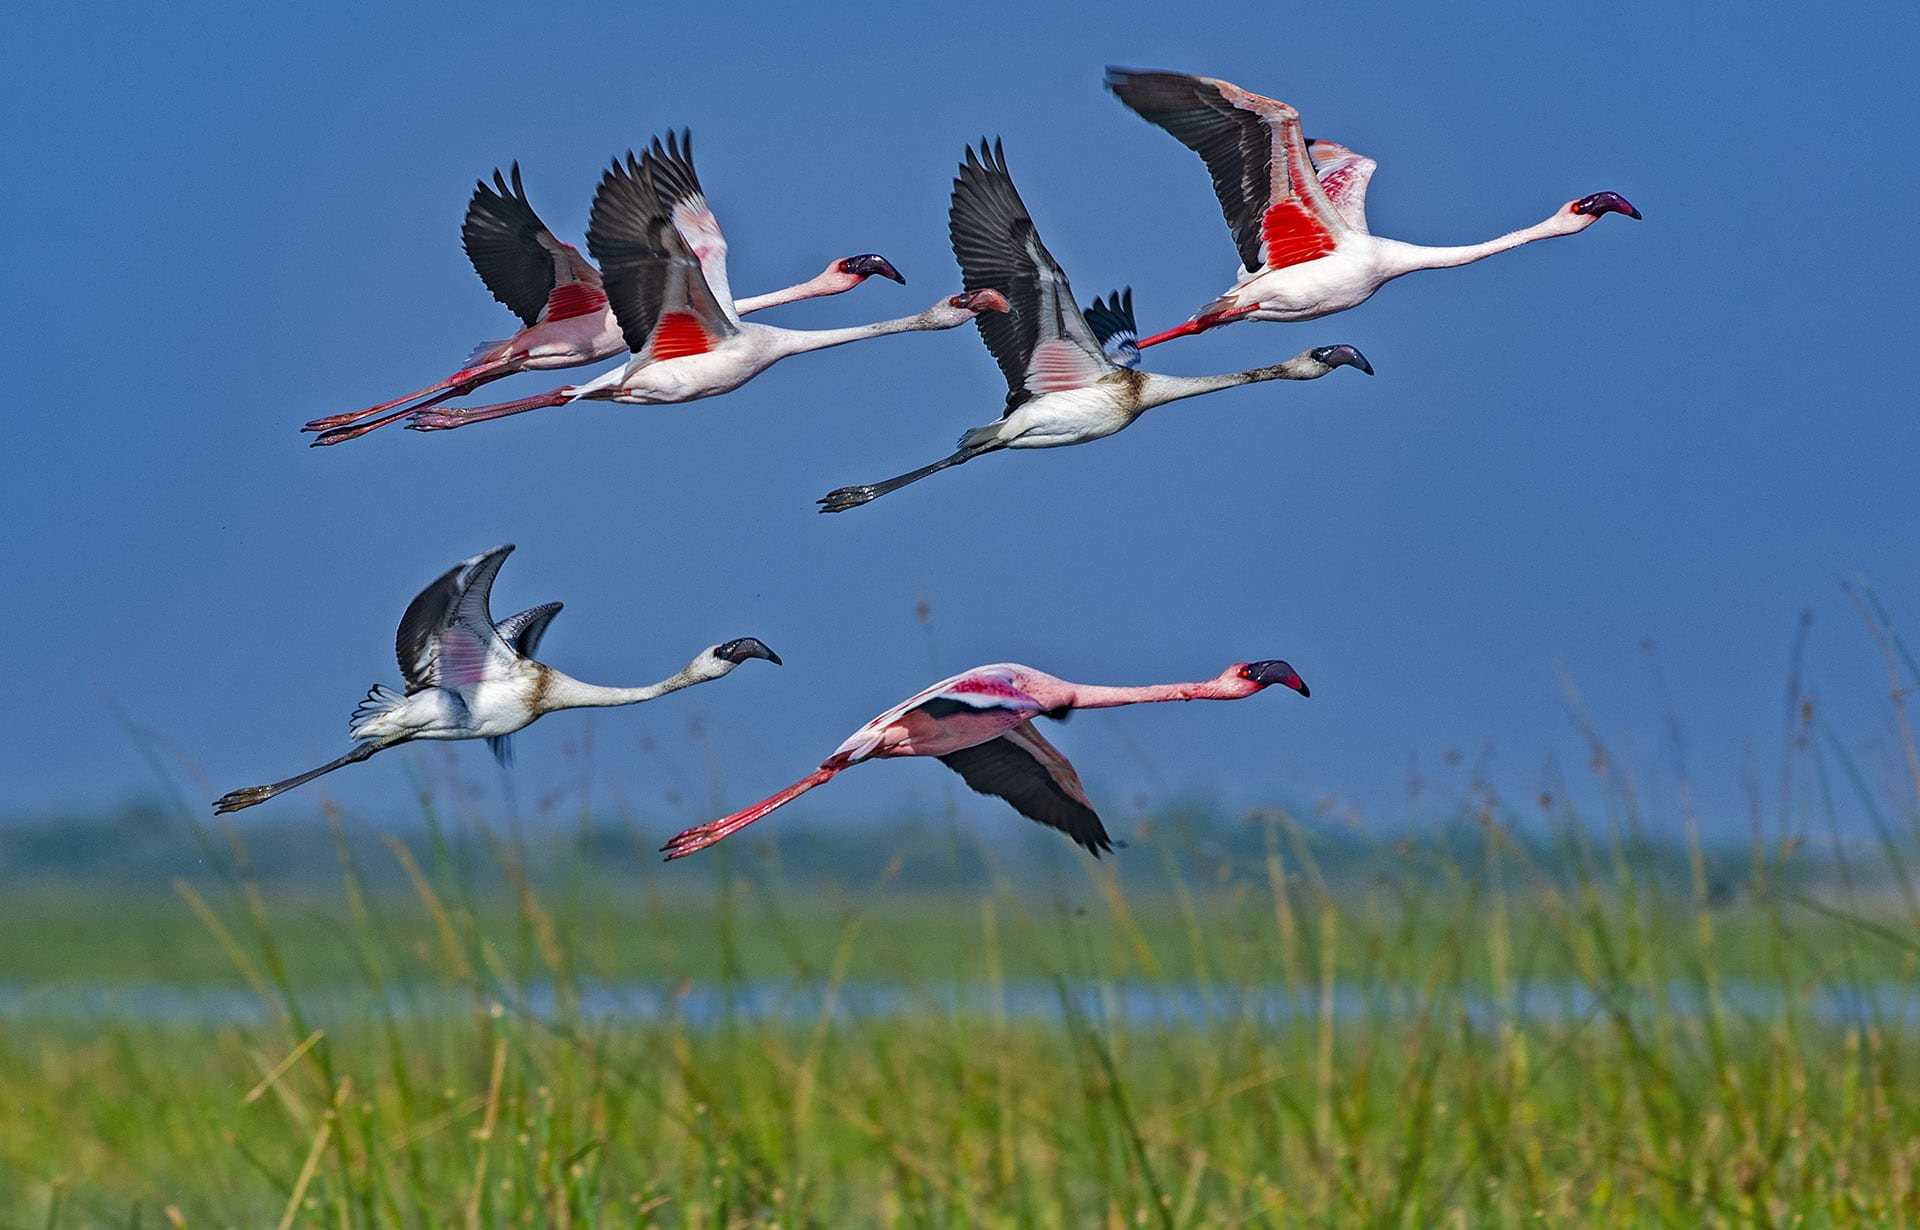 """Once the young can fly, the birds leave the breeding grounds. """"By December-January, we start getting reports of birds arriving in Maharashtra, near Thane creek,"""" says Shah. """"We also know of greater flamingo populations in Point Calimere in Tamil Nadu, Okhla barrage in Delhi, Harike Lake in Punjab, and Sambar lake in Rajasthan, but we cannot say whether these are the same birds that come to the Rann in the monsoon.""""  Satellite tracking is one way to understand their movement, says Shah, but equipment is prohibitively expensive. """"Almost 50 per cent of the tags fail, and these majestic birds are not getting the kind of research funds and grants that the species deserves."""""""